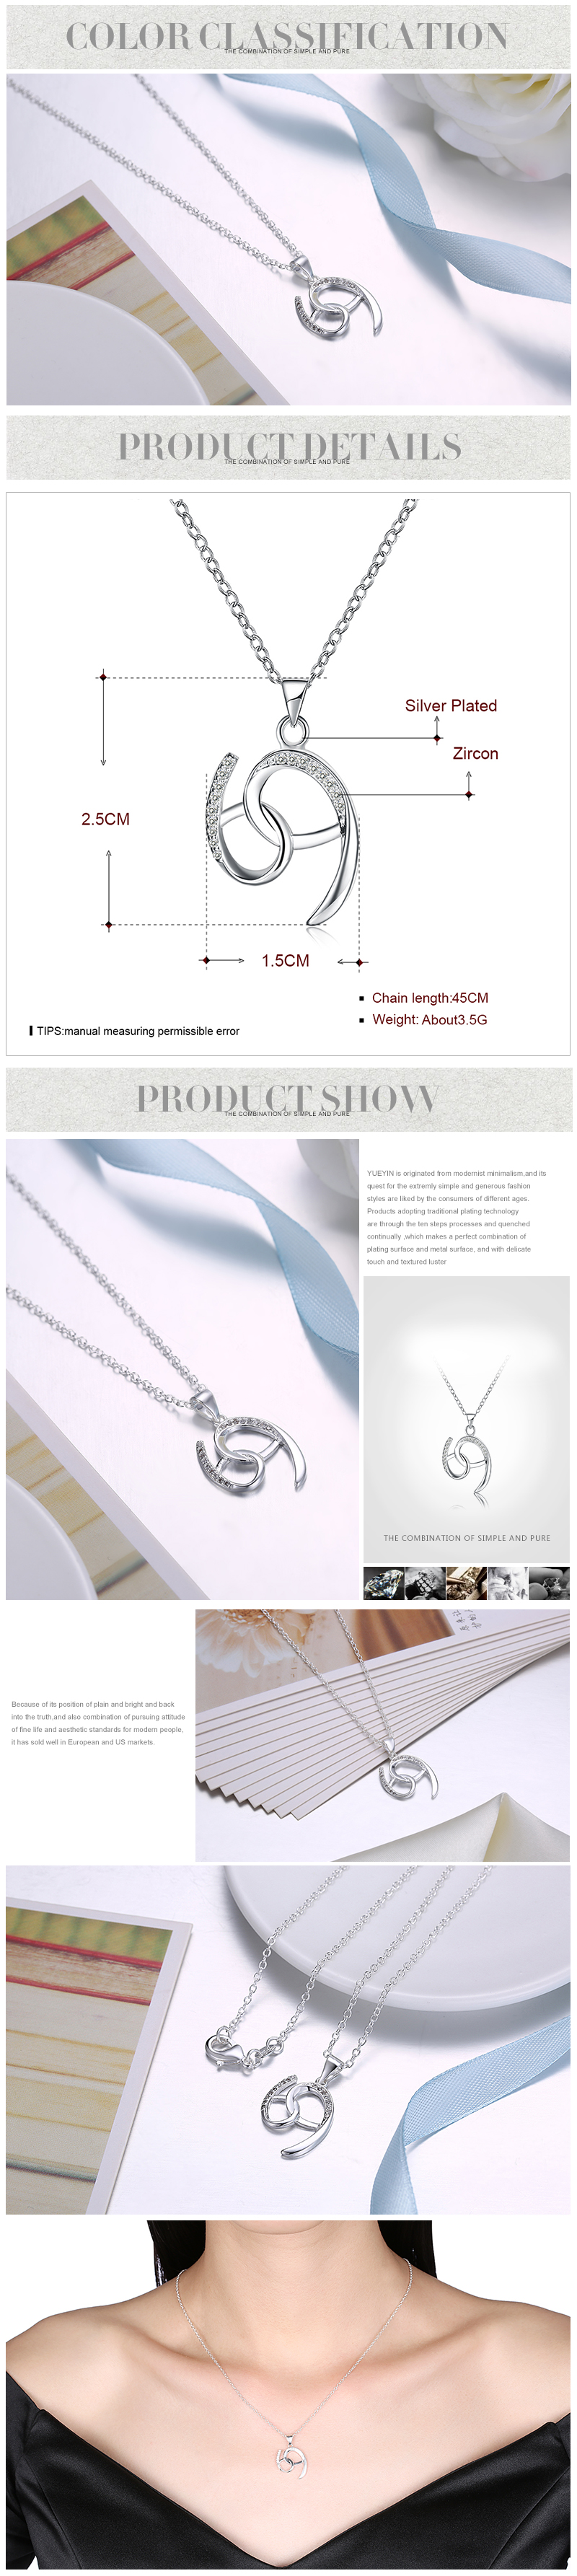 Necklaces NHKL12271